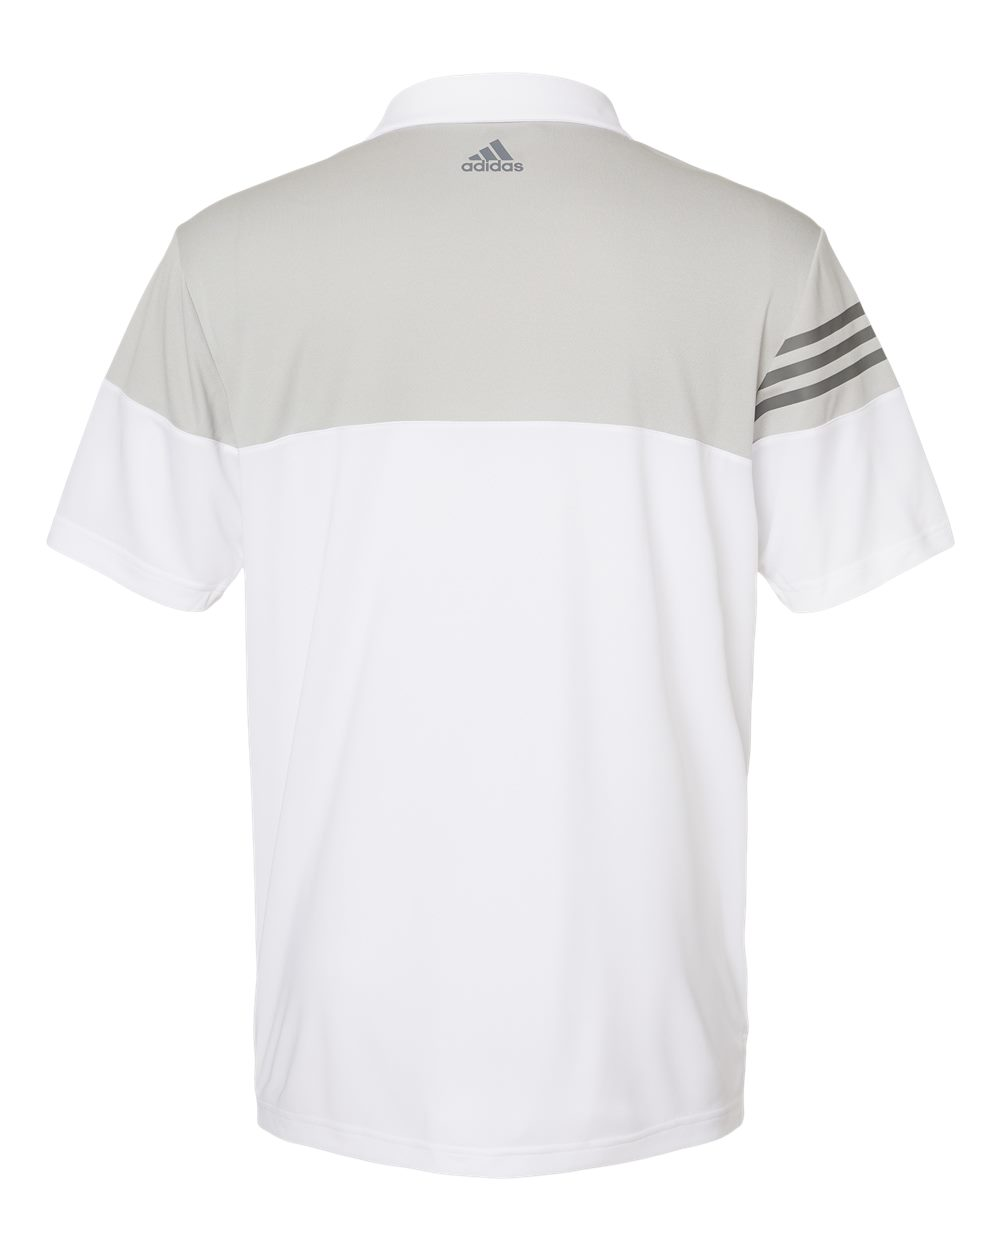 Adidas-Heather-3-Stripes-Block-Sport-Shirt-Polo-Button-A213-up-to-3XL thumbnail 28